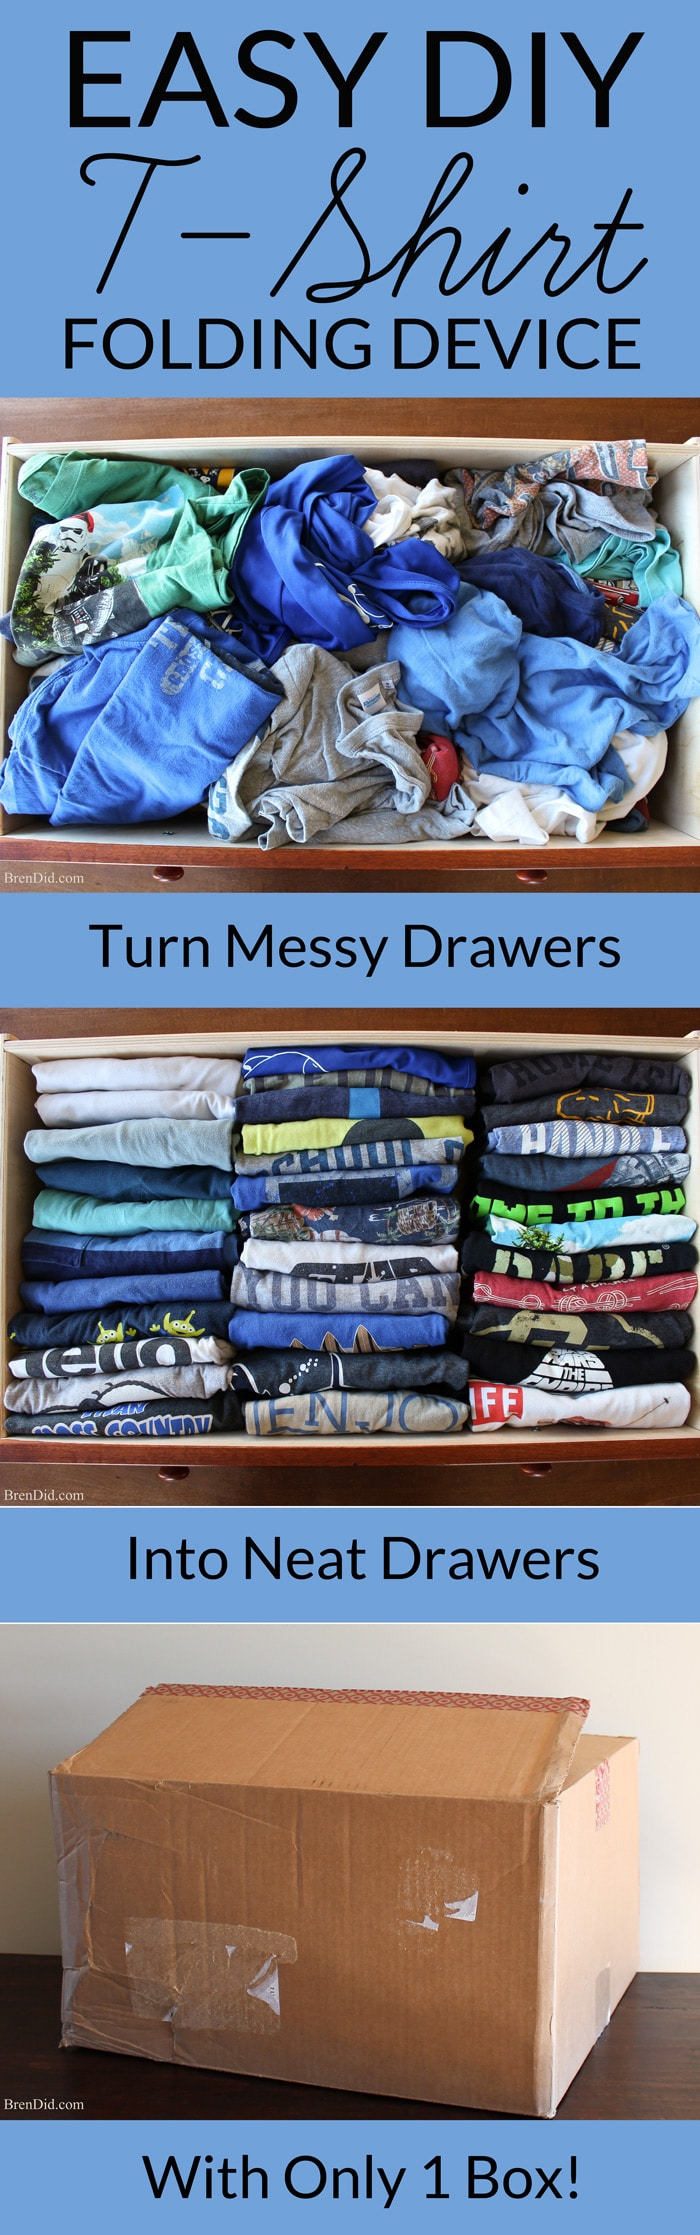 Make your own cardboard t-shirt folder and learn the best way to fold a t-shirt so your drawers can hold more clothes and you can easily find your favorite tee. Great for kids to help with laundry.